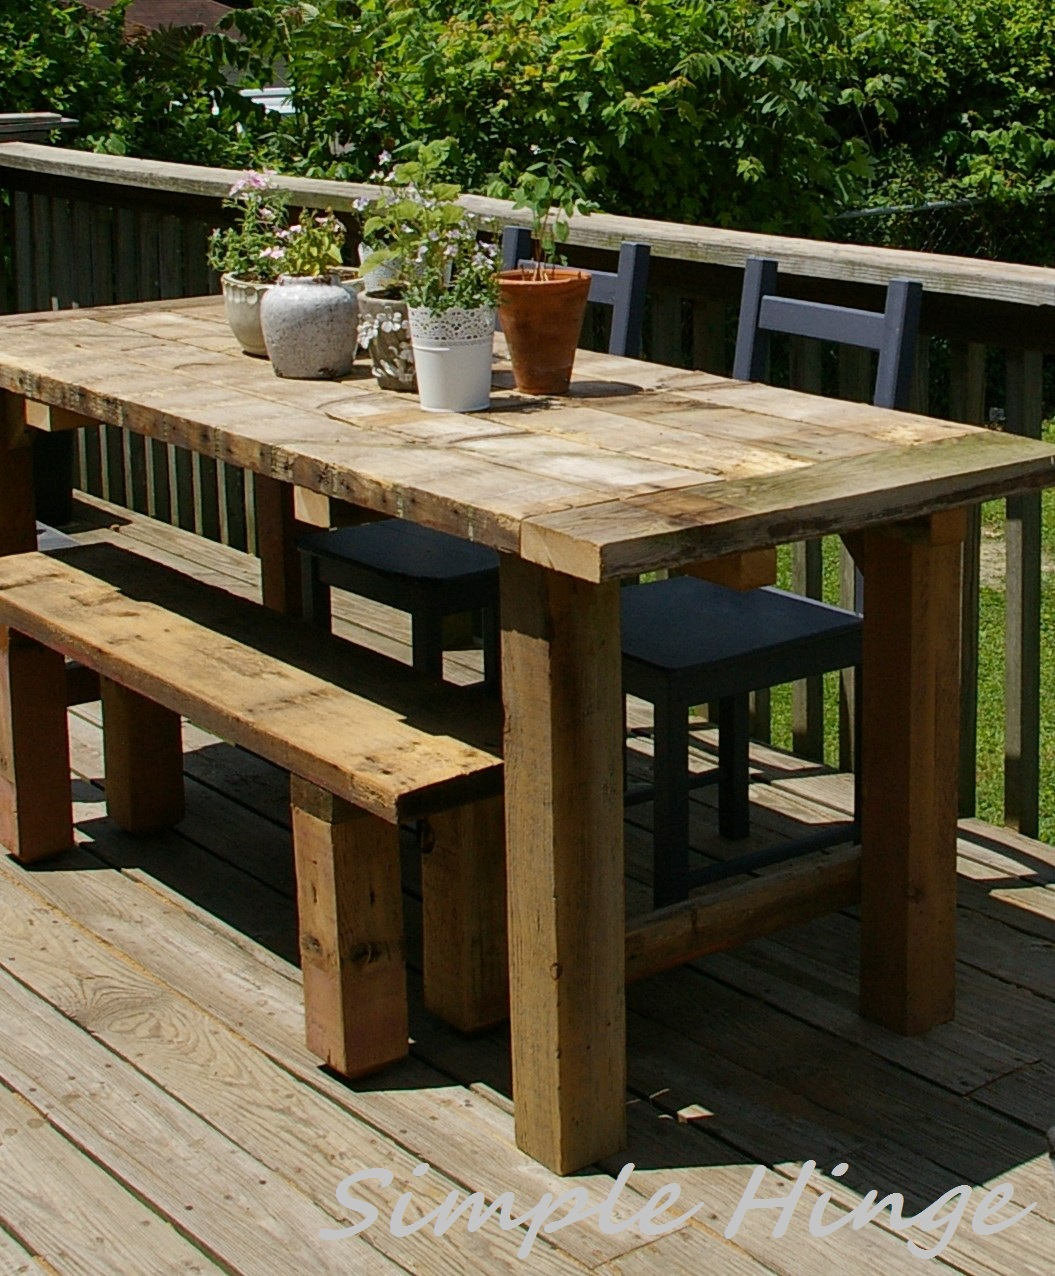 rustic table interior decorating trends seating outdoor ideas design and cupboard designs furniture bench arch